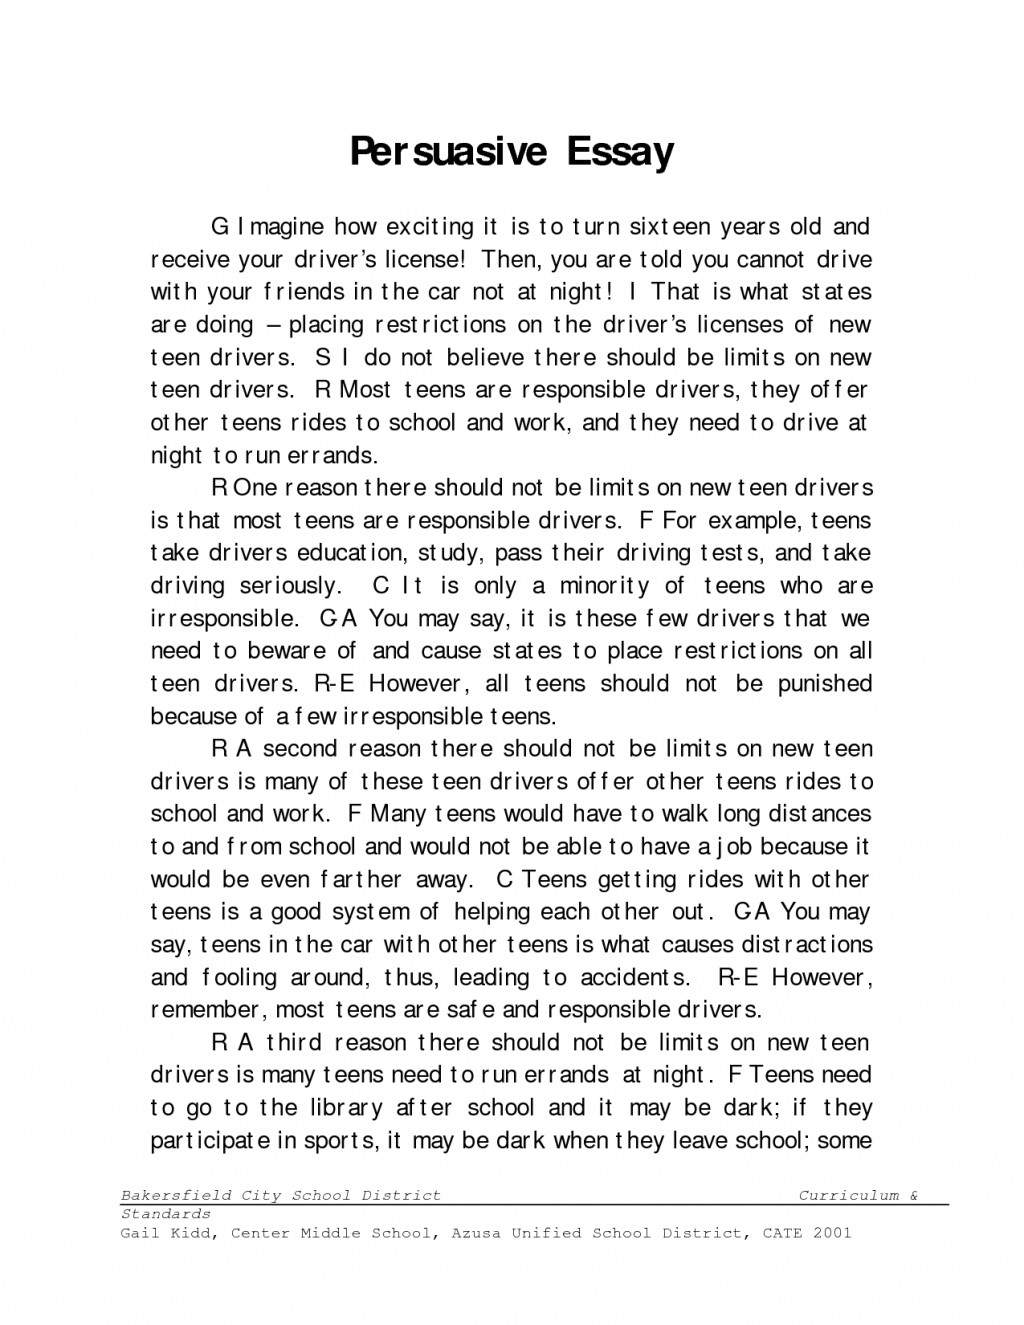 003 Topics For Persuasive Essays Essay Incredible 4th Grade Large